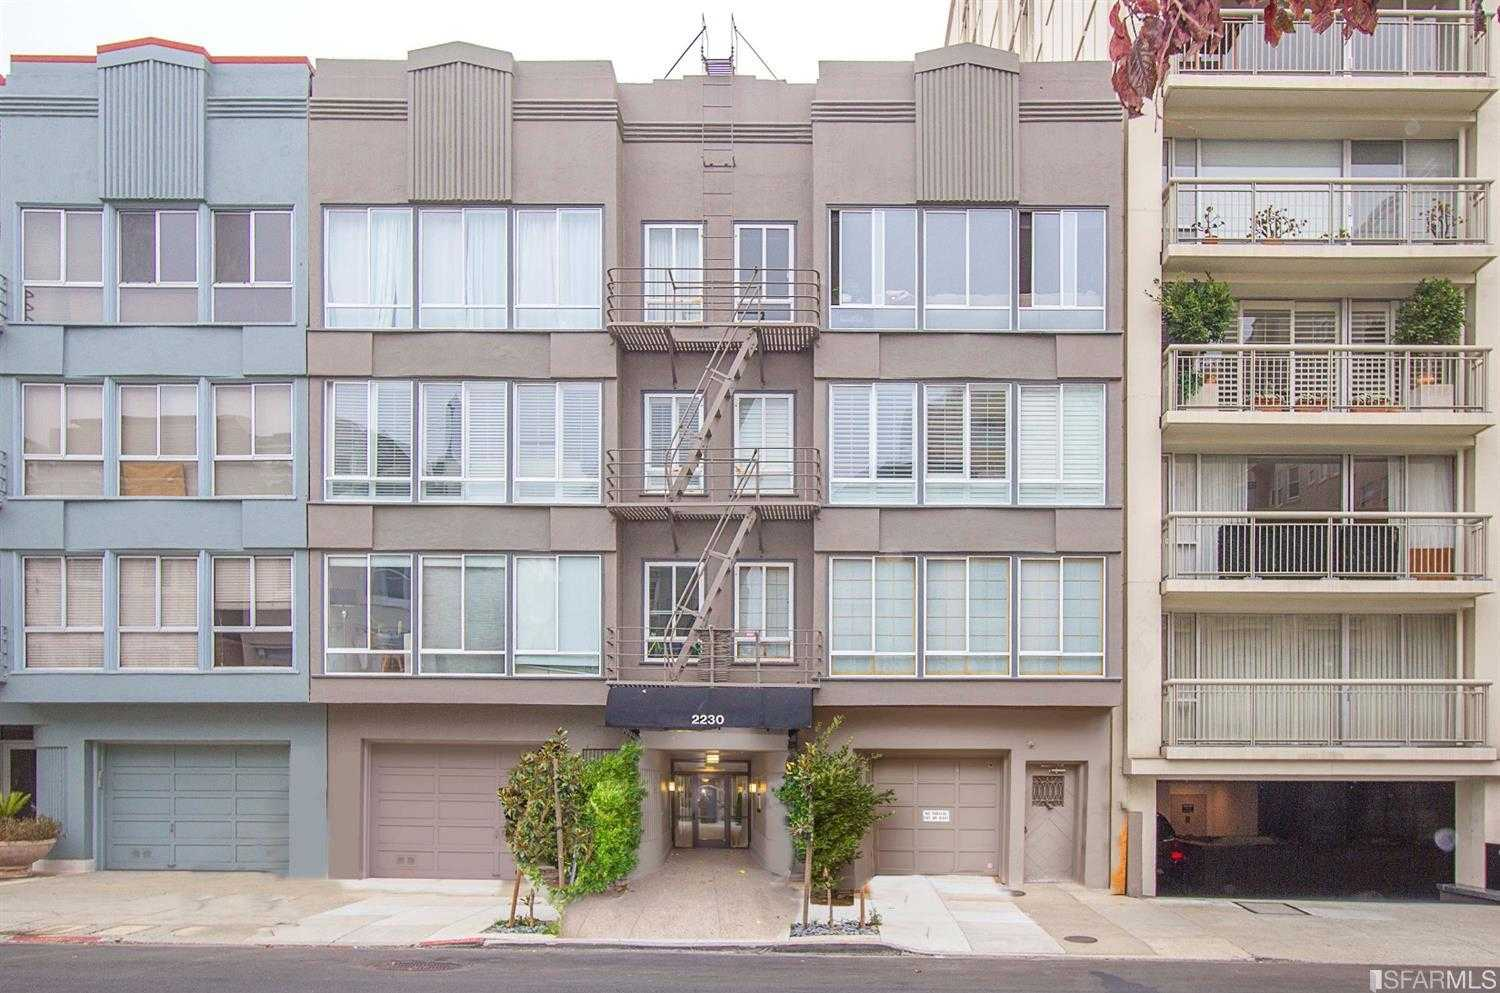 2230 Pacific Avenue Unit 204 San Francisco, CA 94115